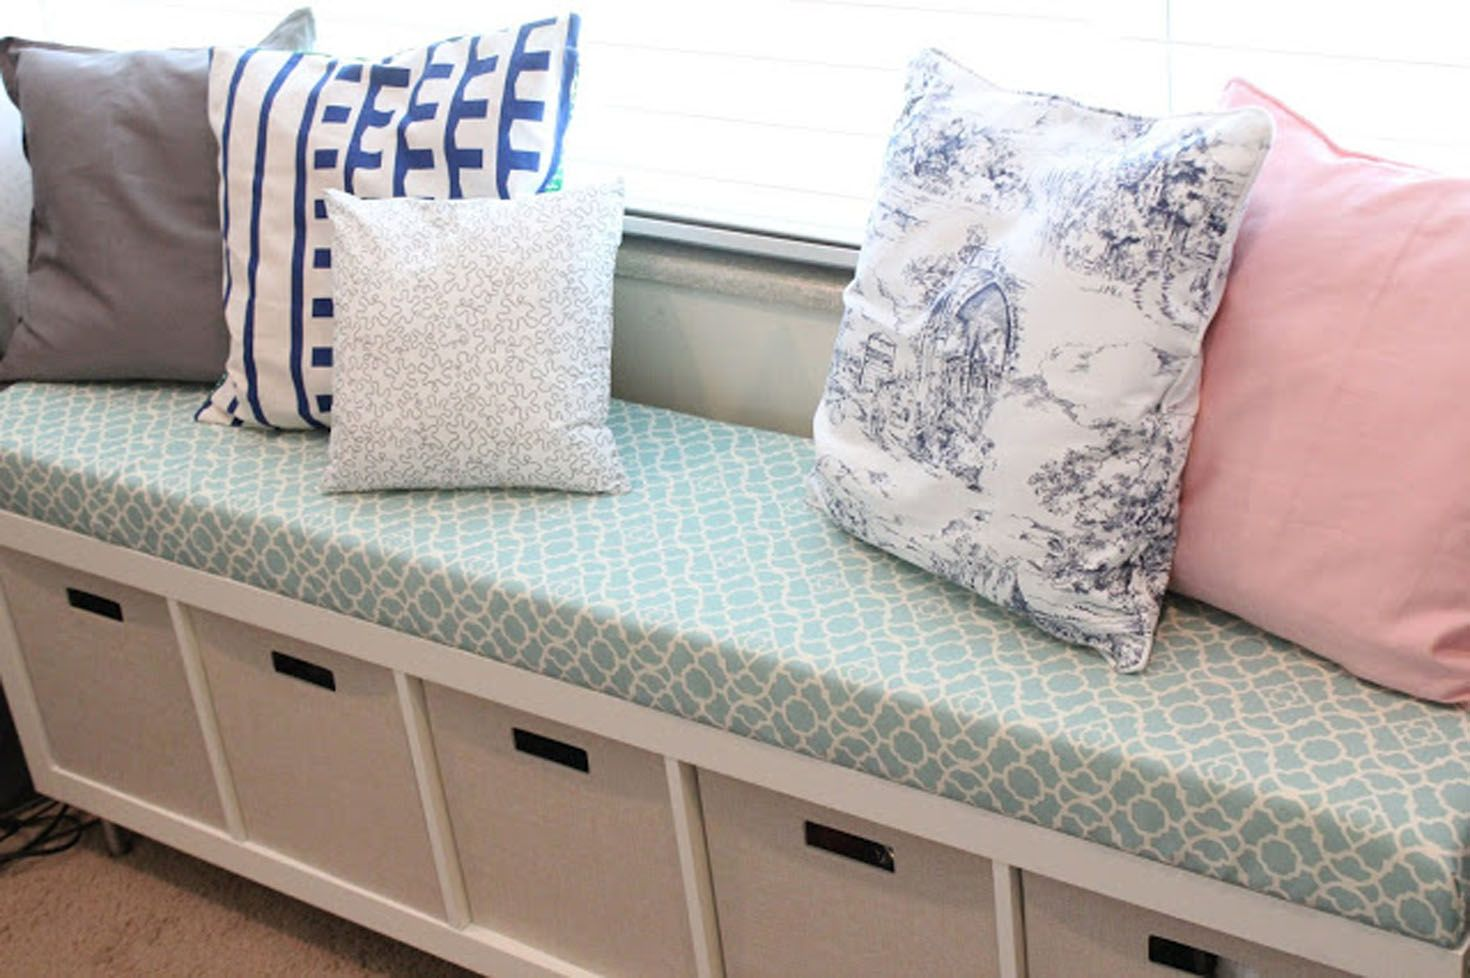 12 Easy Ways to Keep Your Bedroom Organized